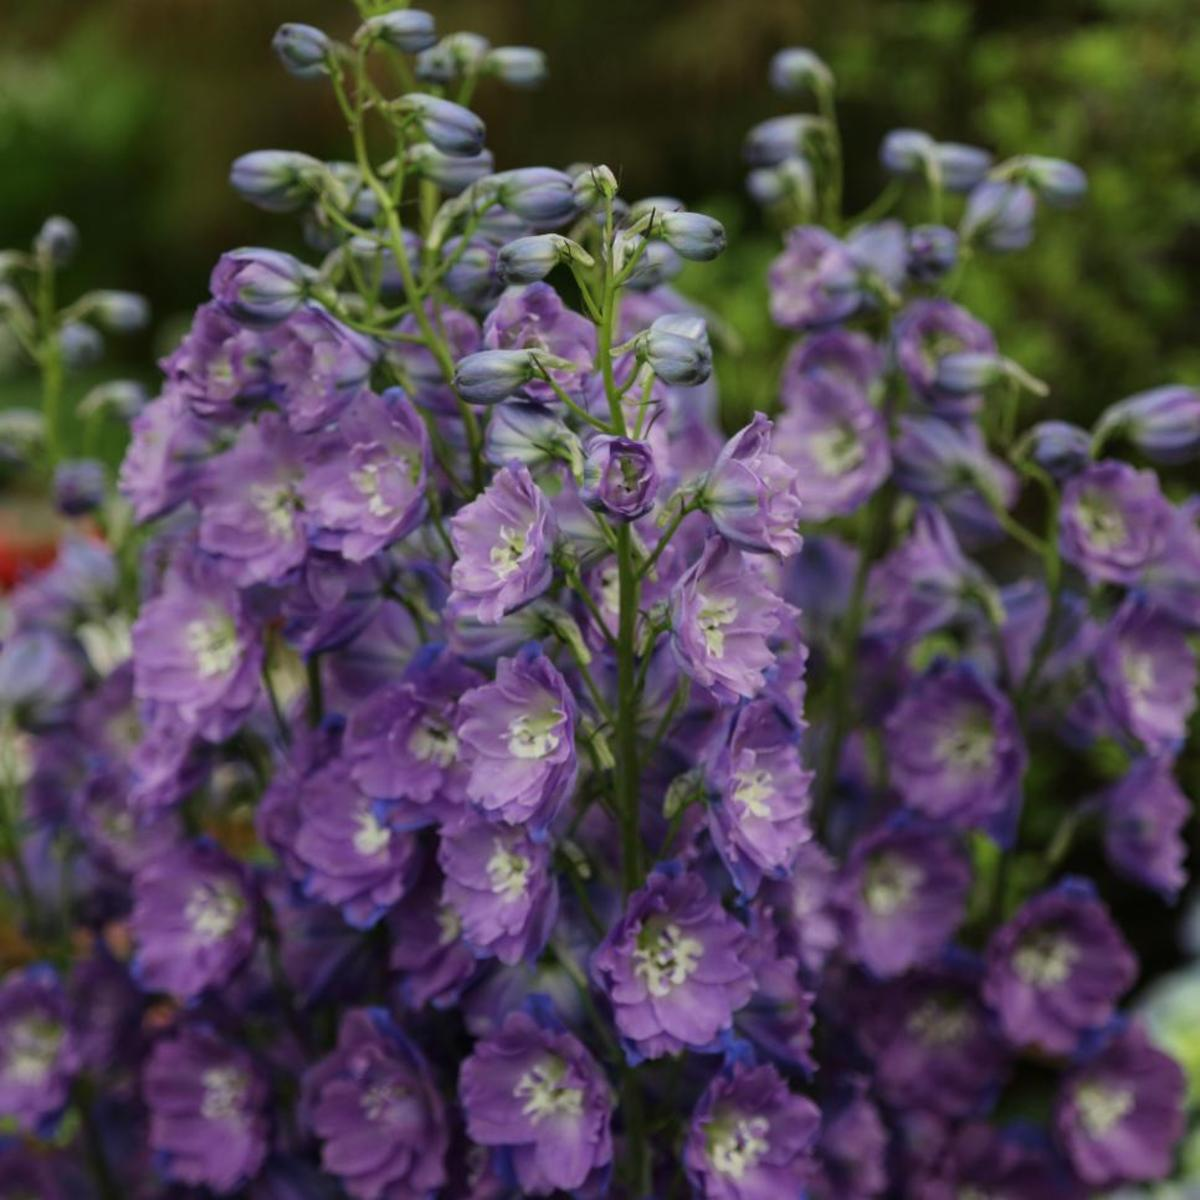 How to plant, grow and care for Delphinium?